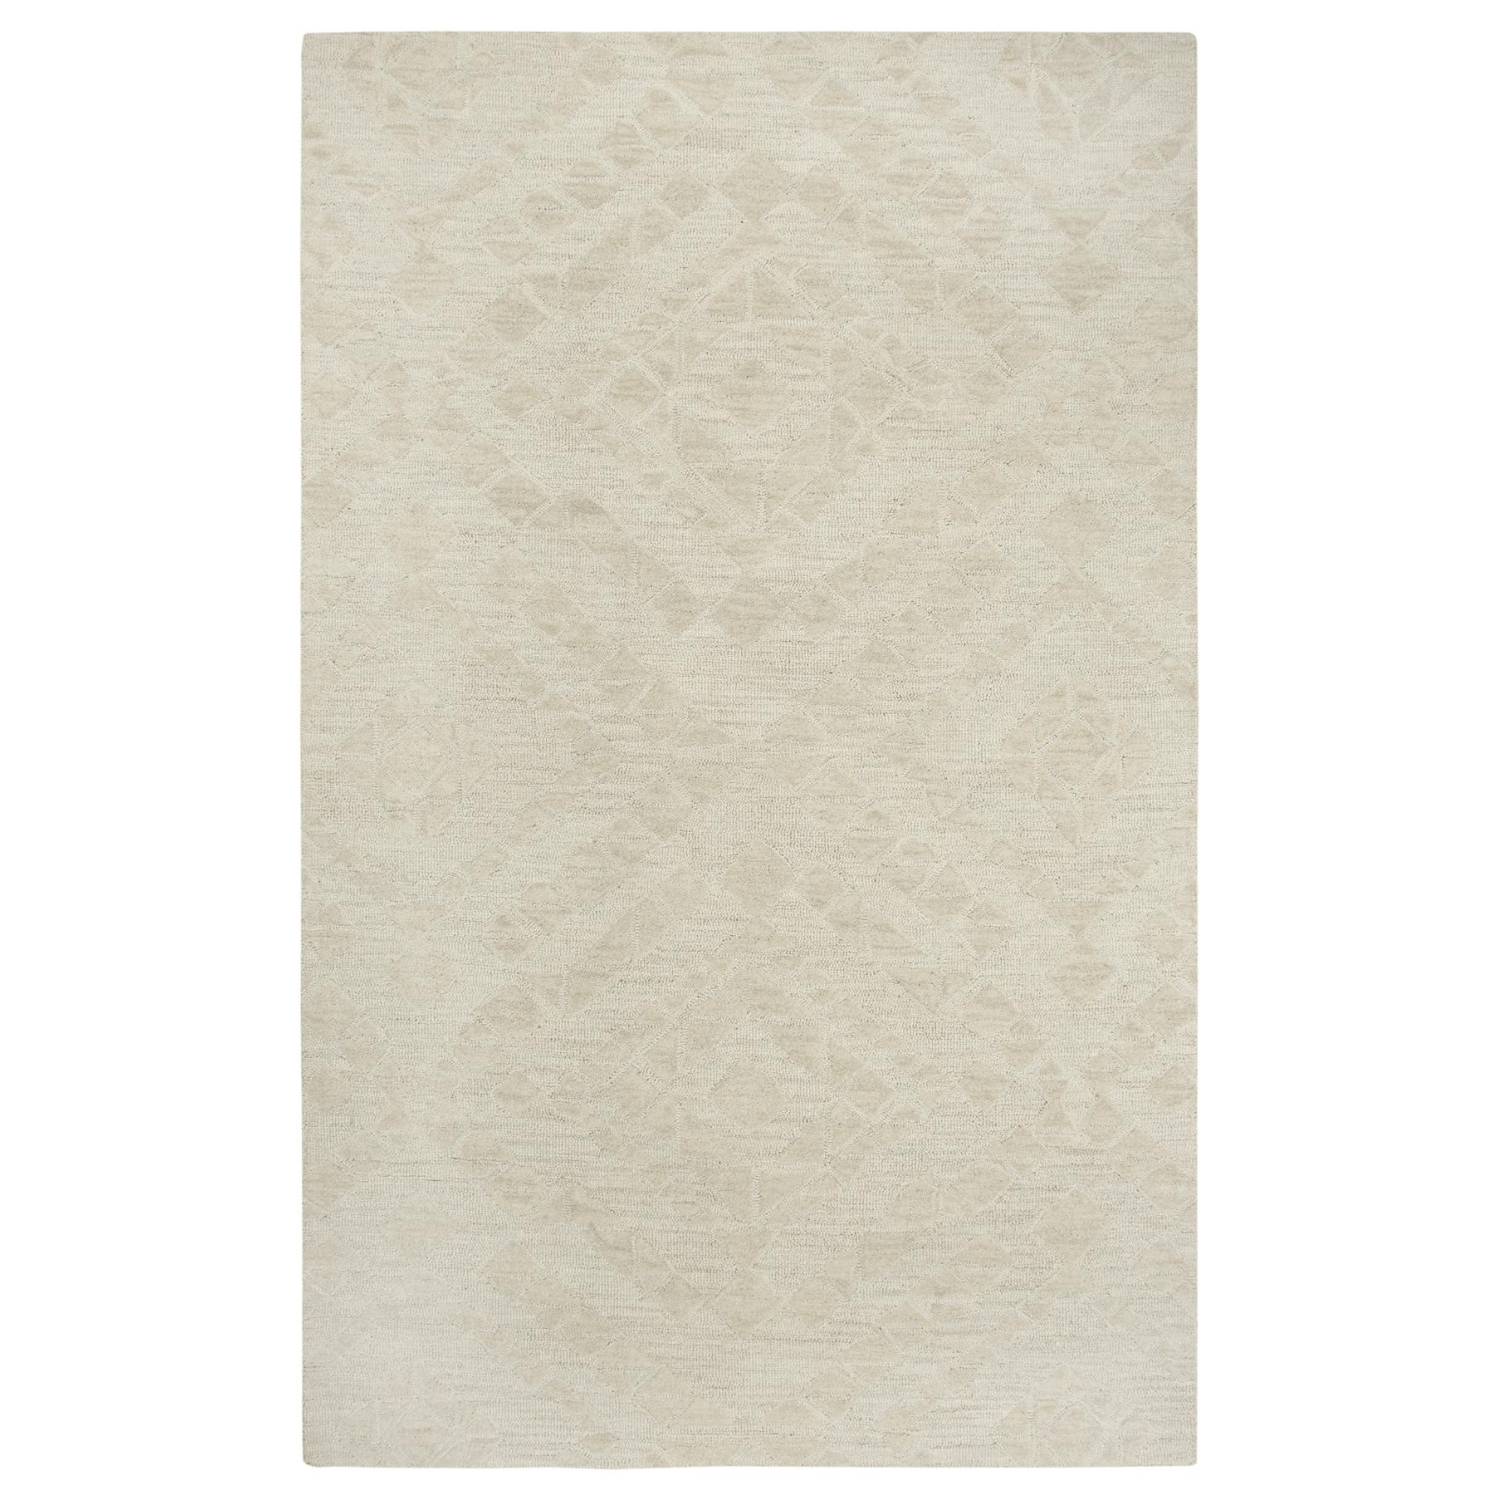 Fifth Avenue Rizzy Home FA167B Beige Wool Neutral Area Rug with Diamond Design